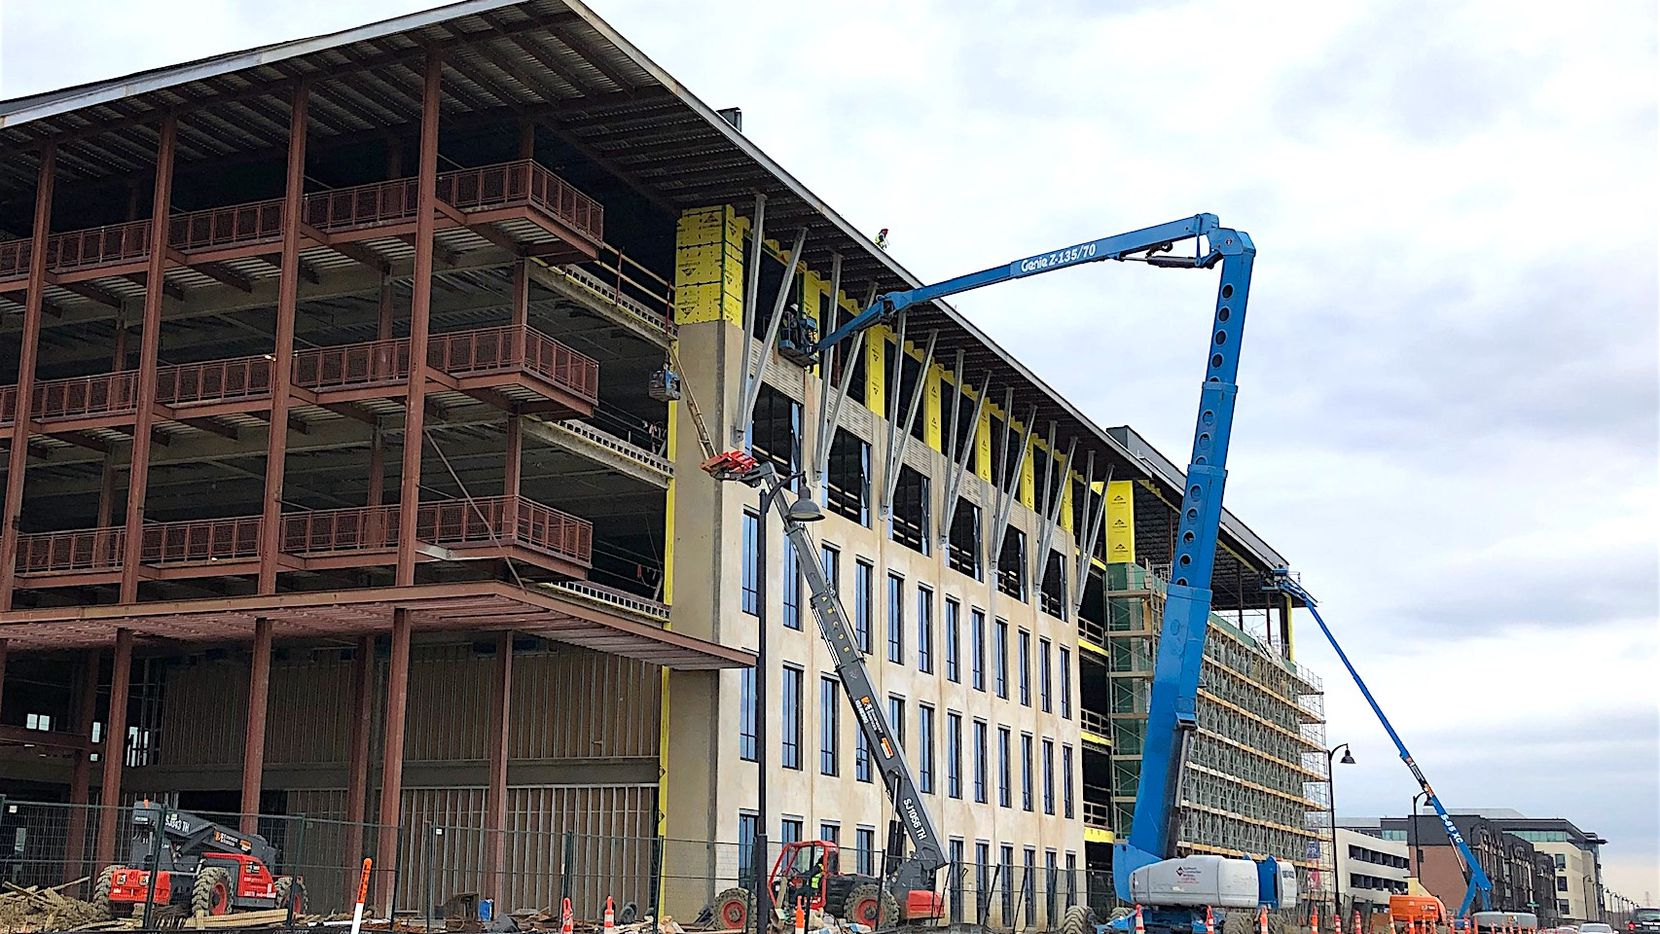 More than 5 million square feet of office space is being built in North Texas.